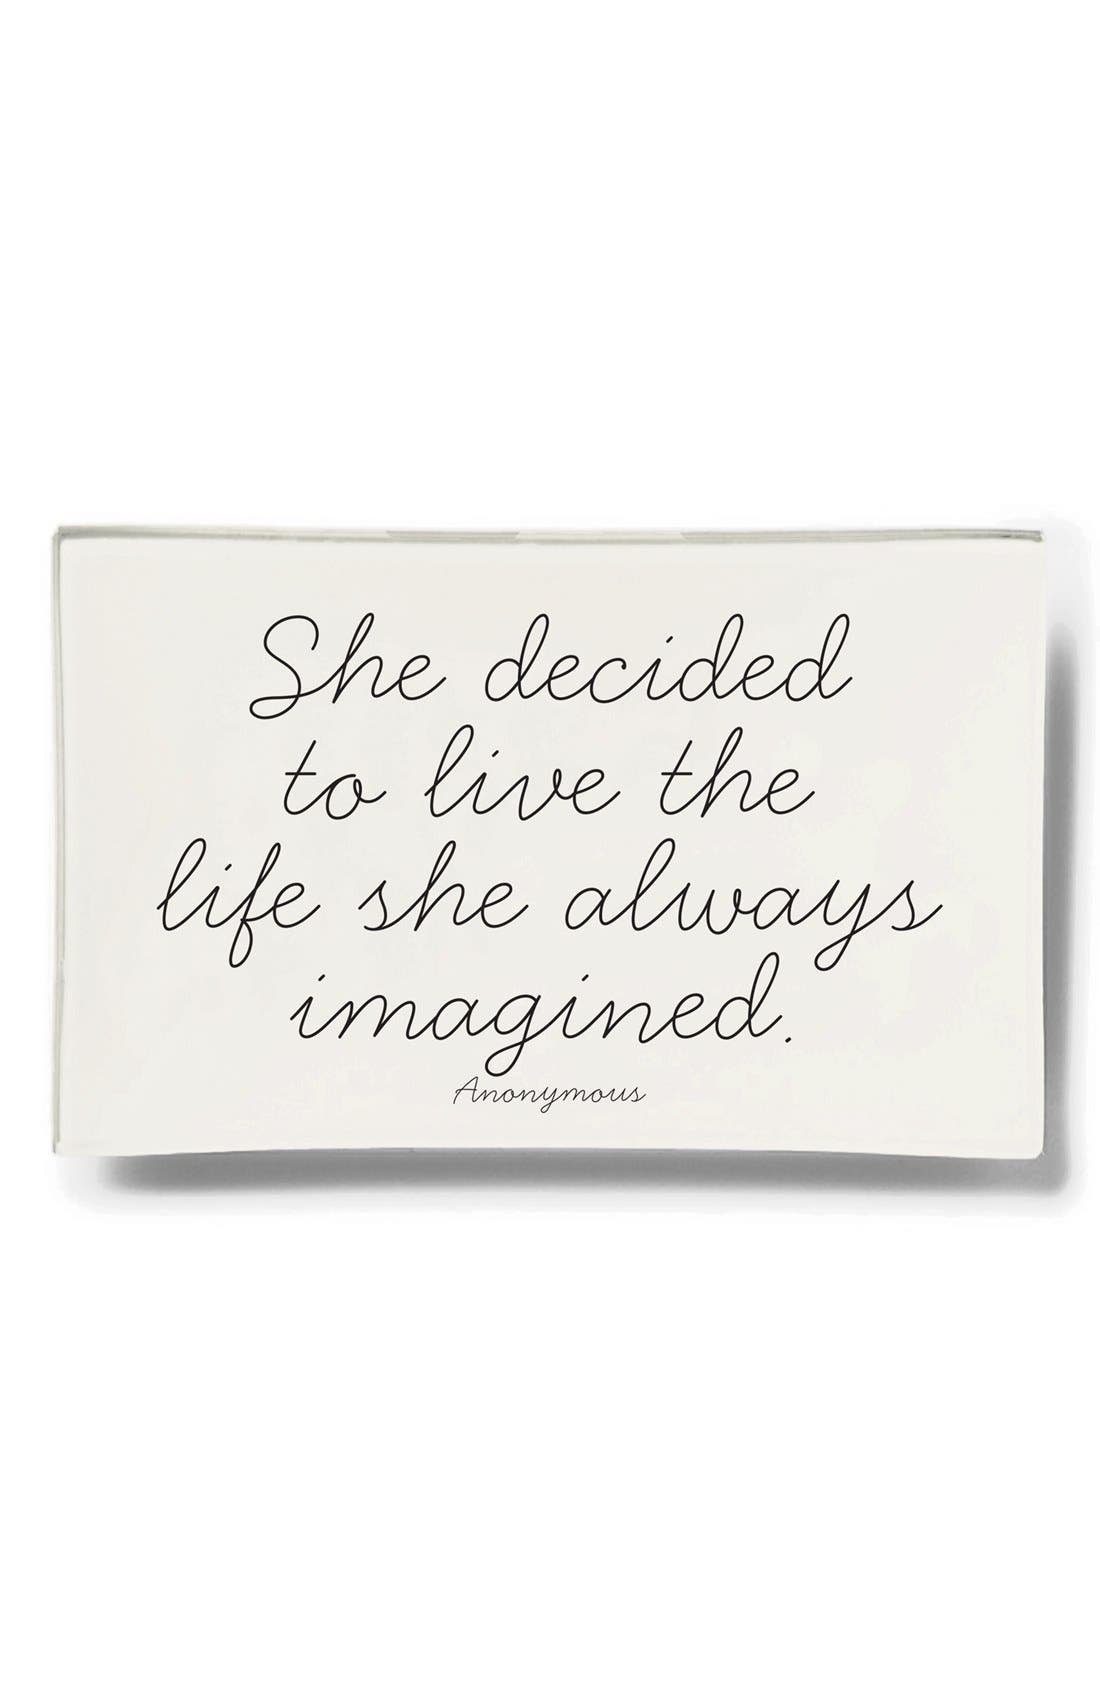 'The Life She Always Imagined' Bent Glass Tray,                         Main,                         color, 101